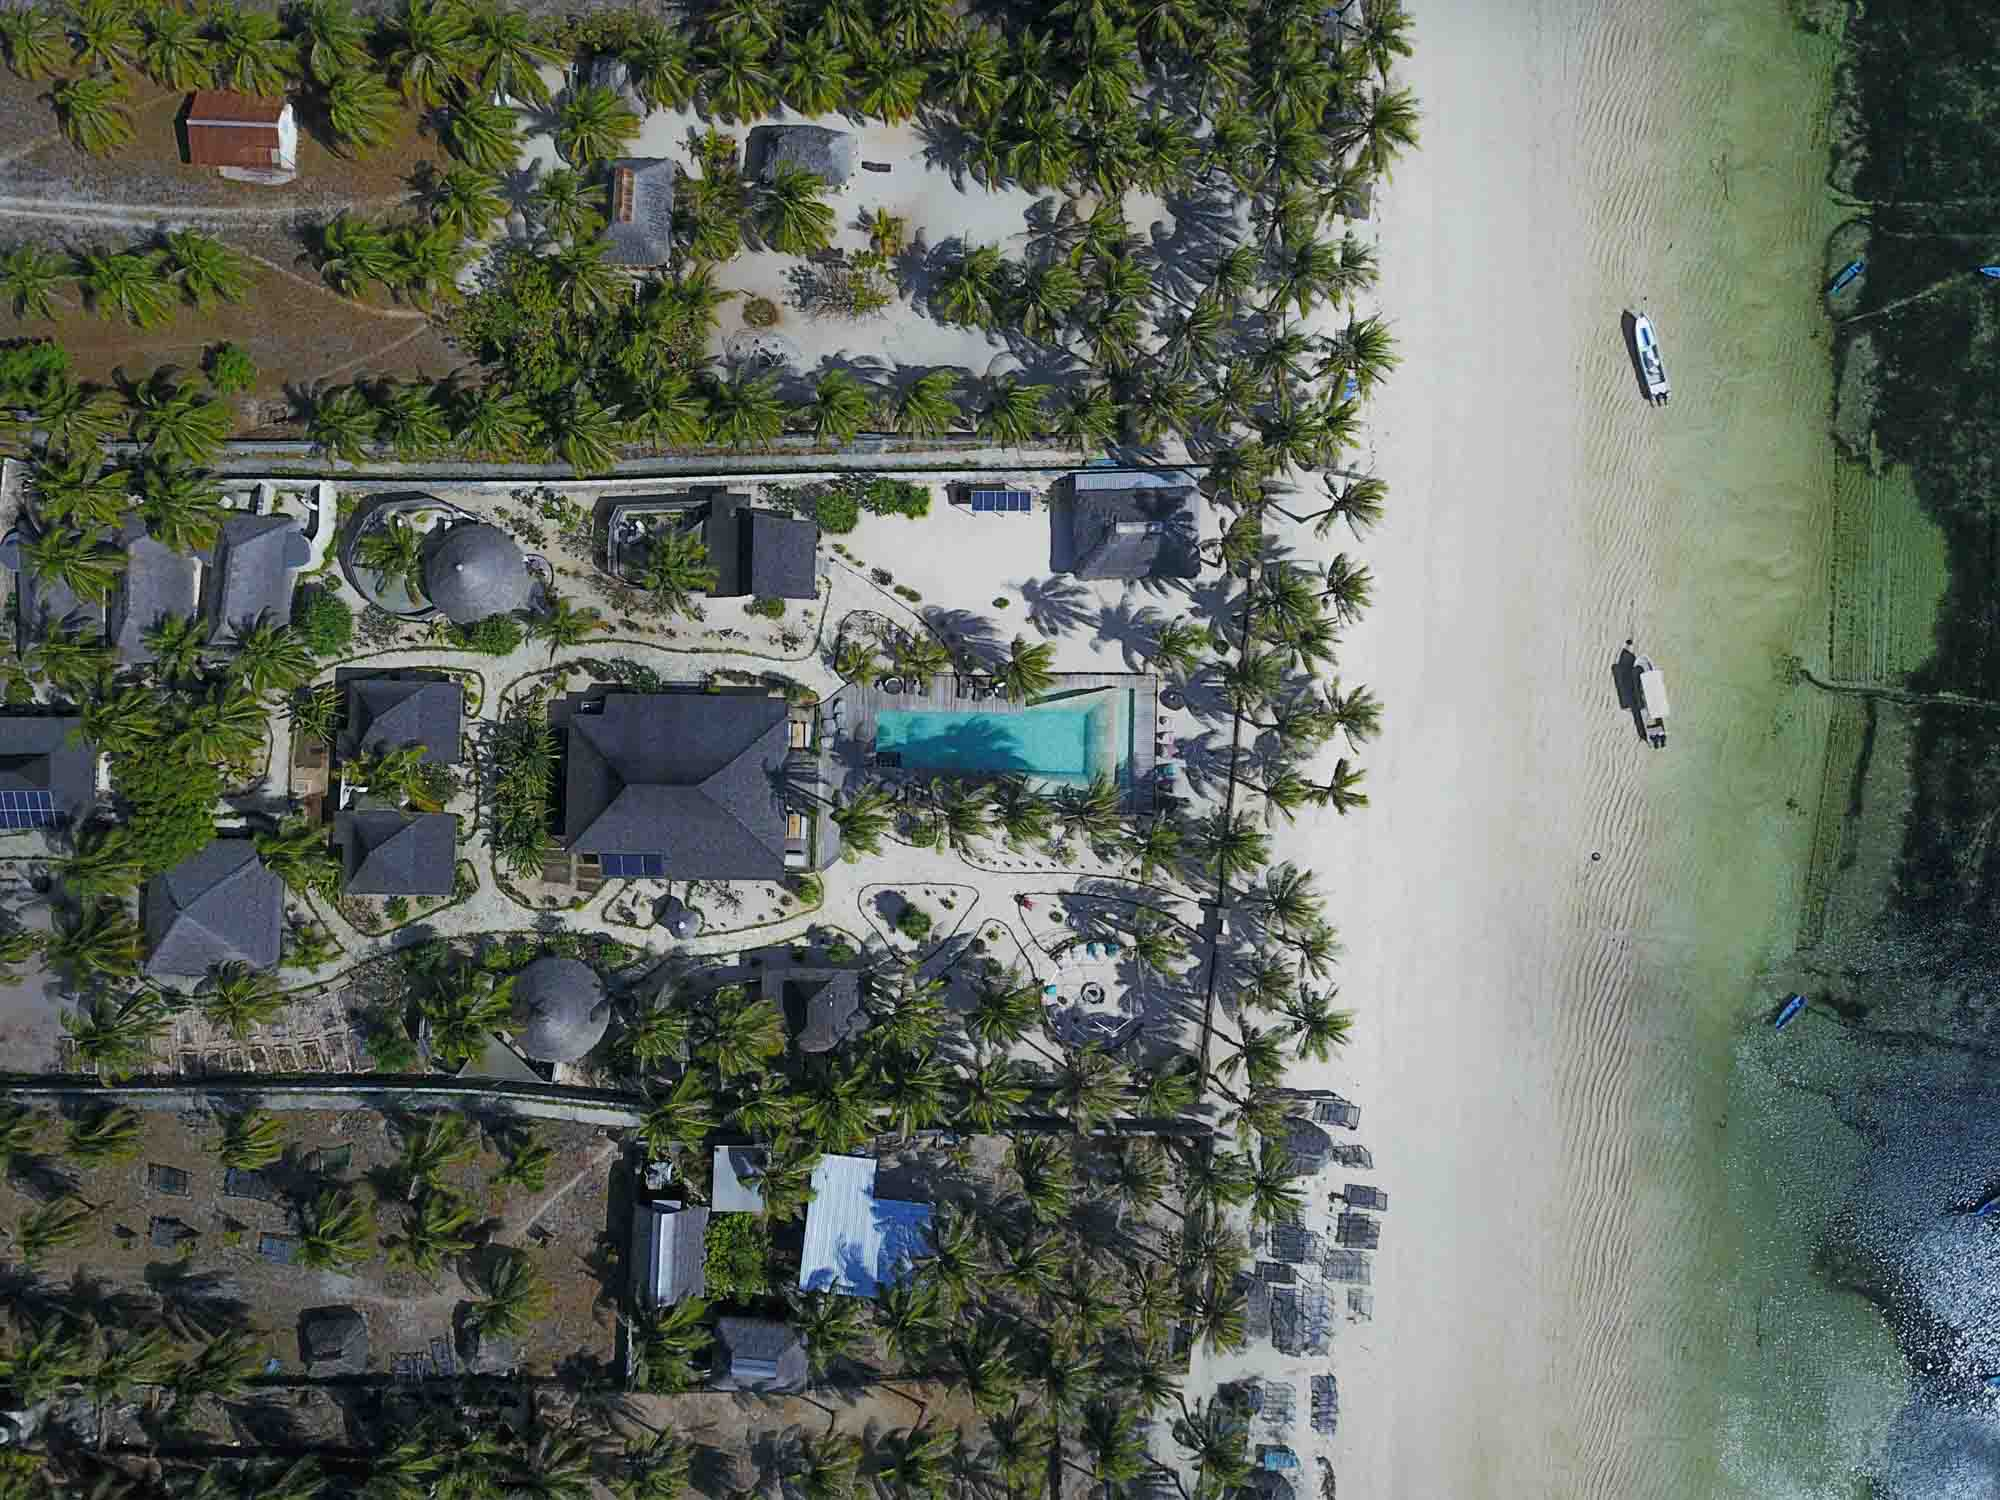 Drone seed resort Rote